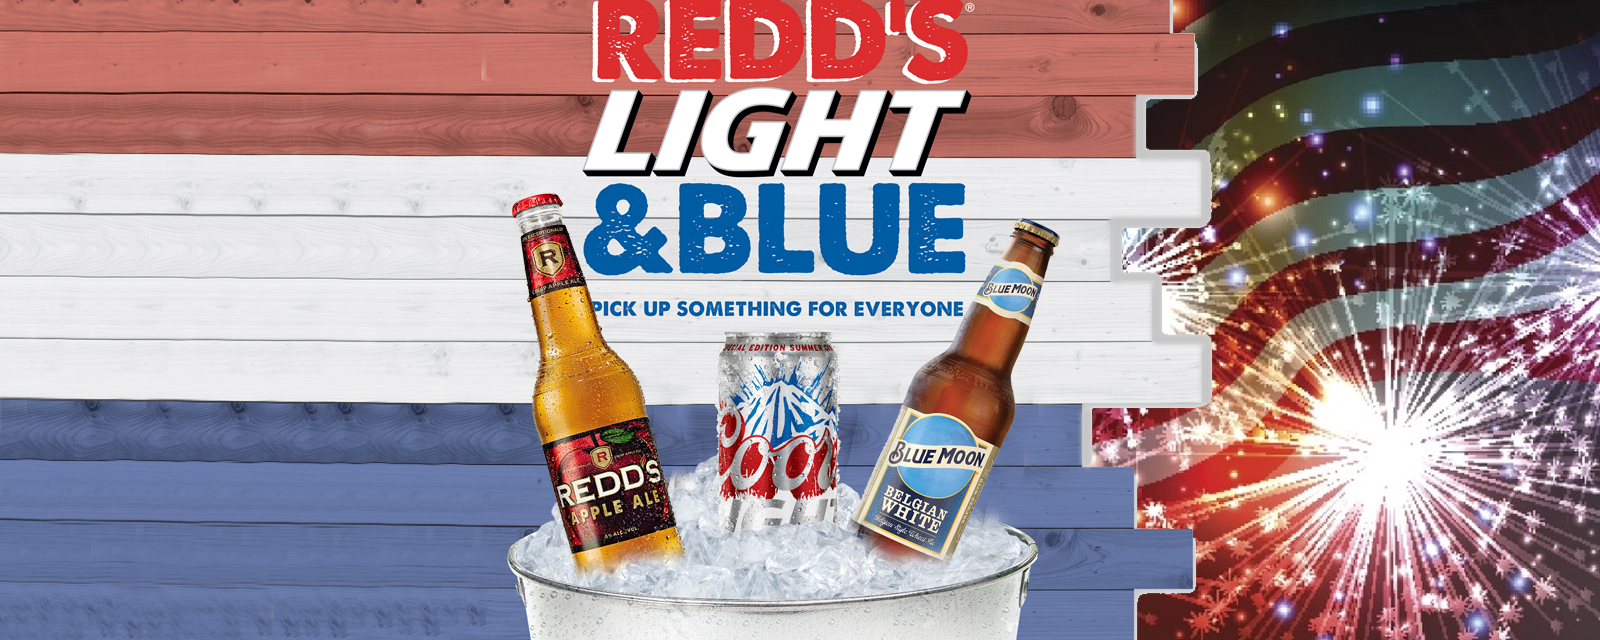 Redds Light Blue